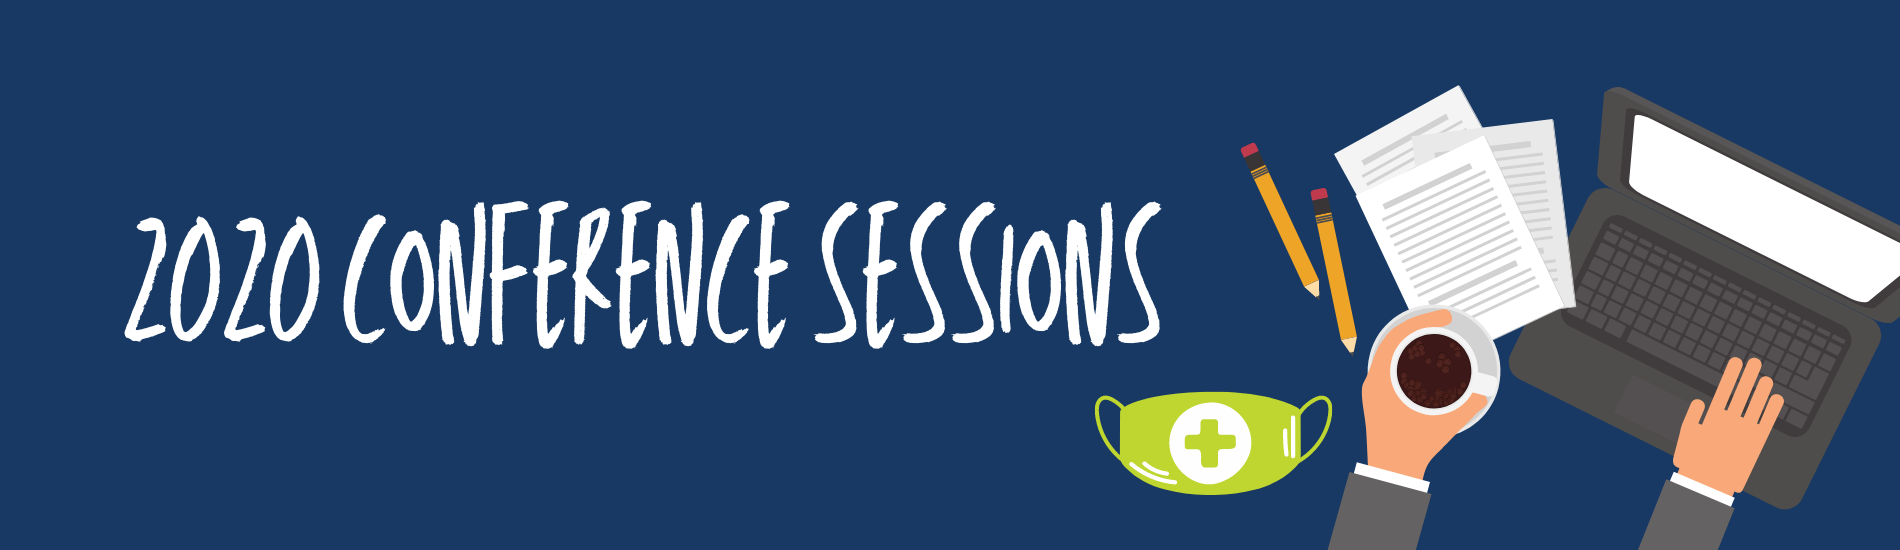 Session heading banner with computer graphic